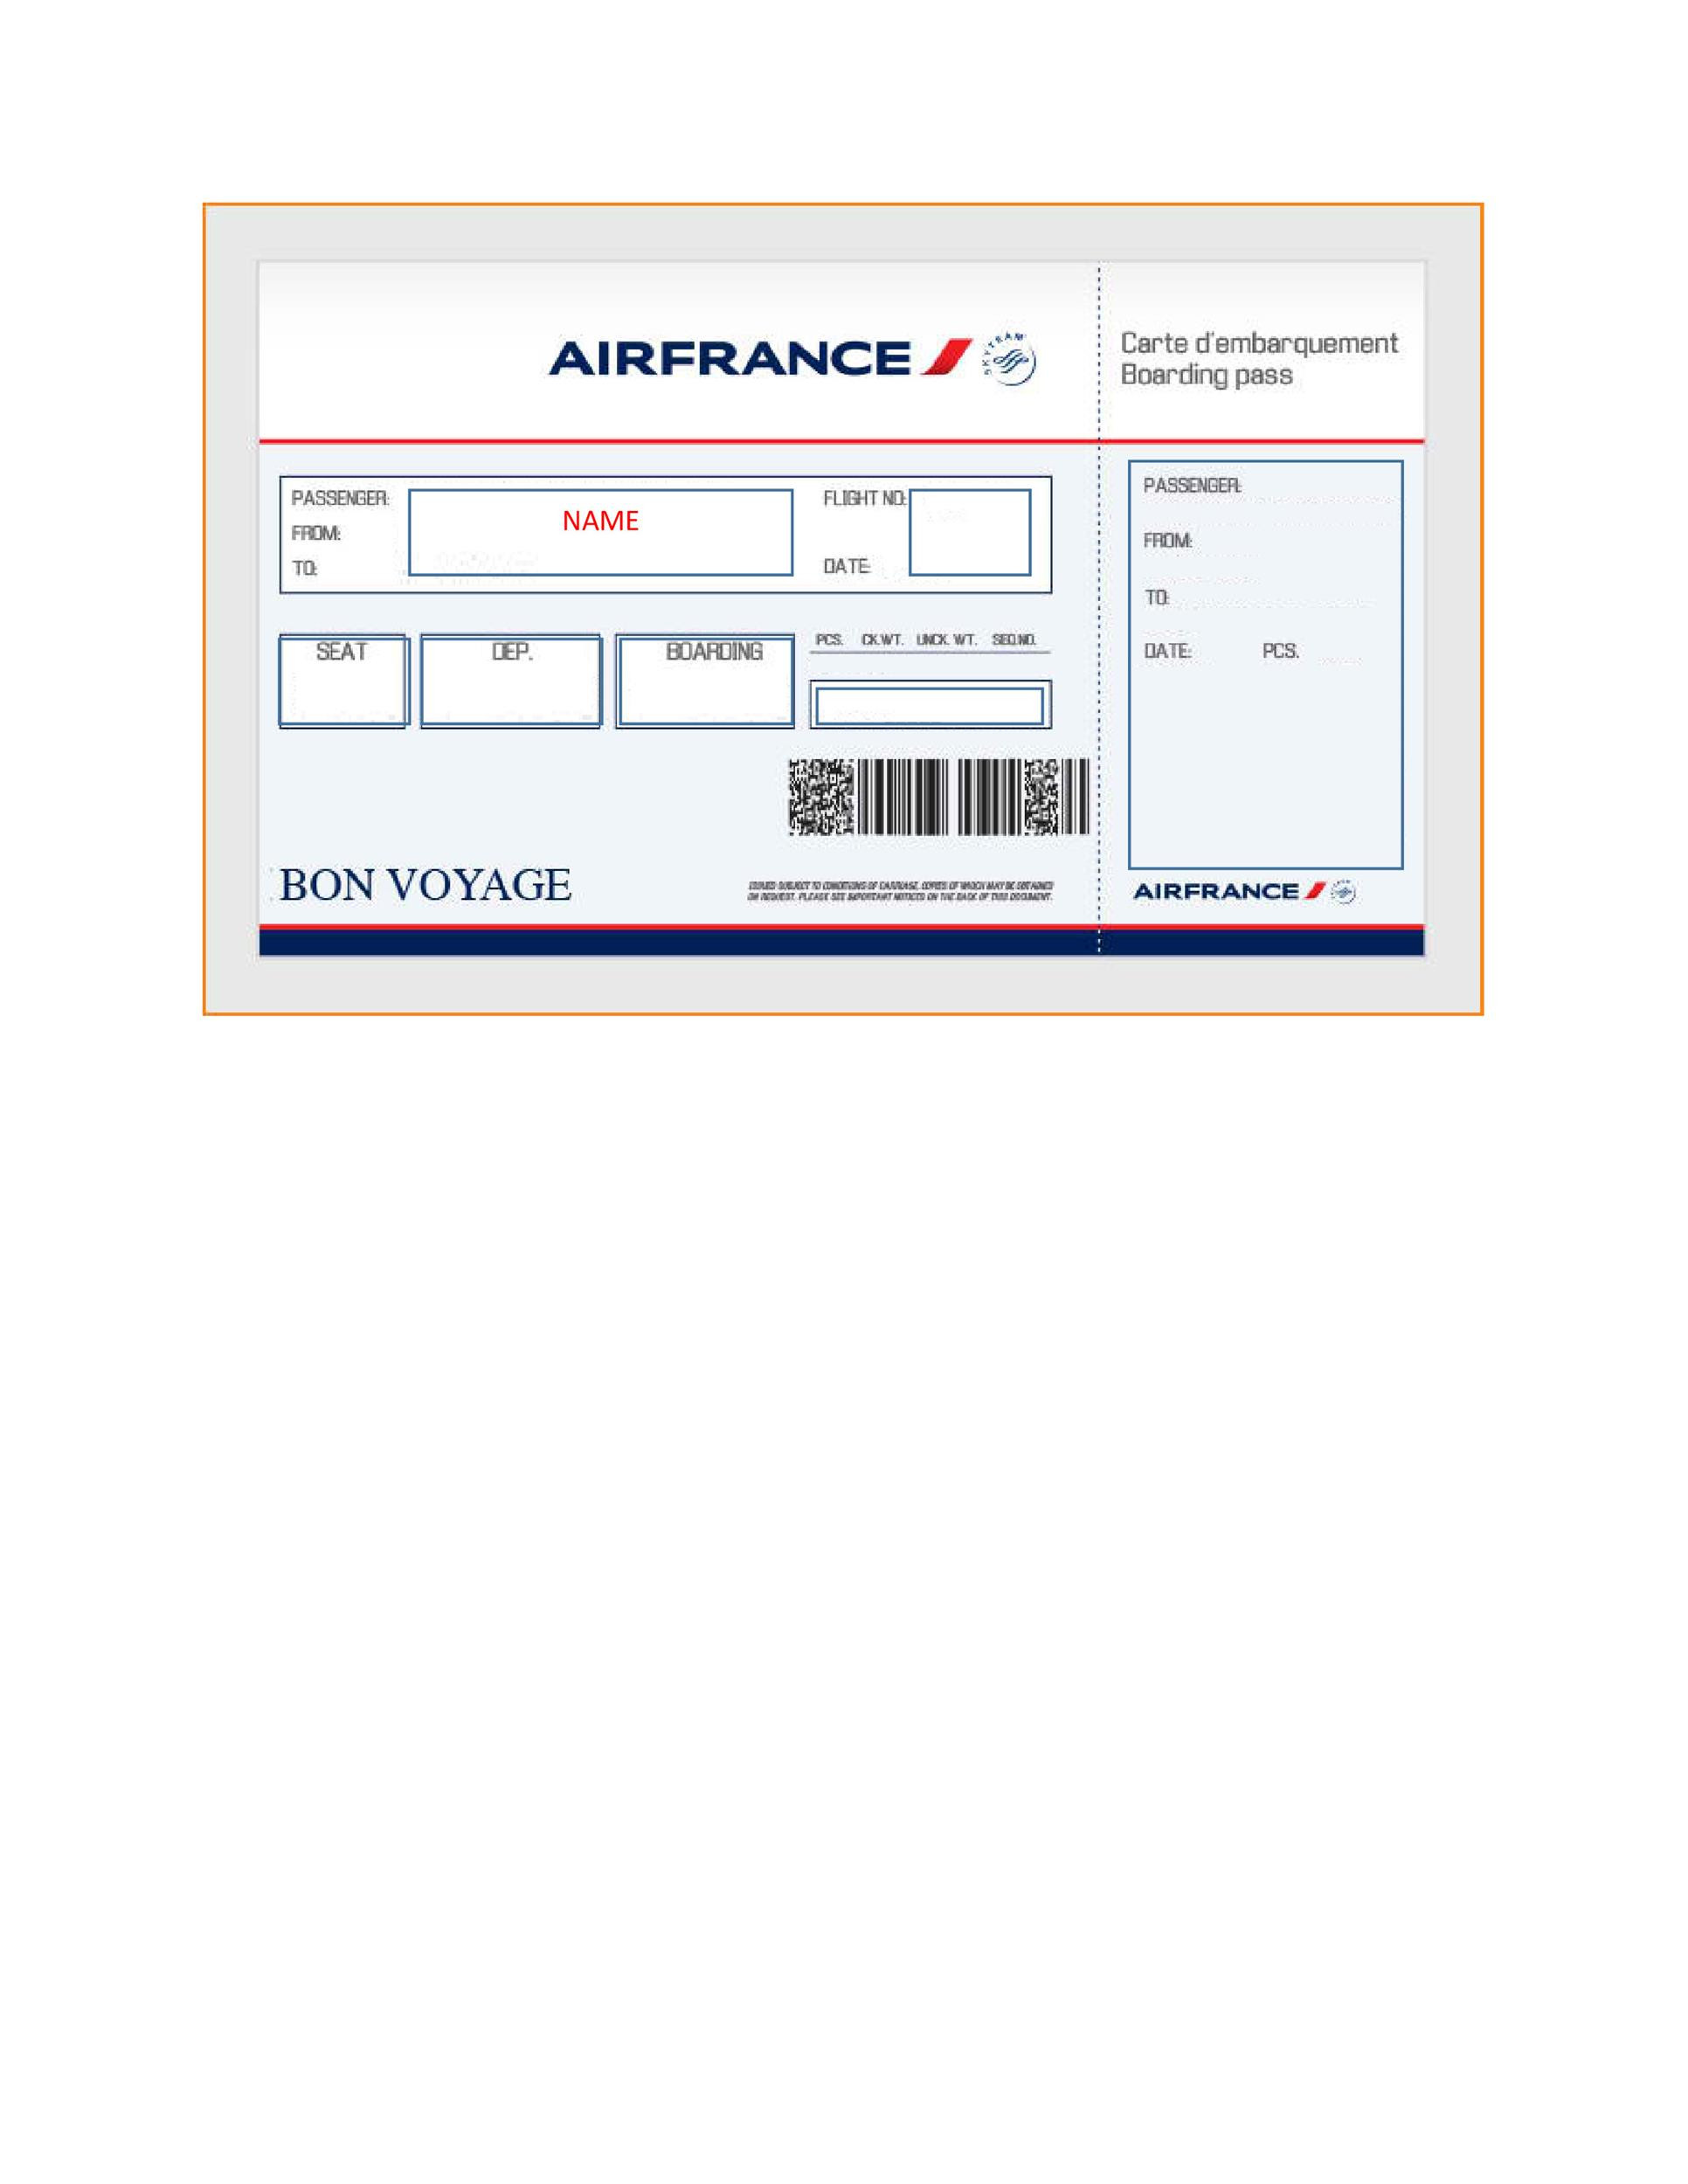 Fake Airline Ticket Template